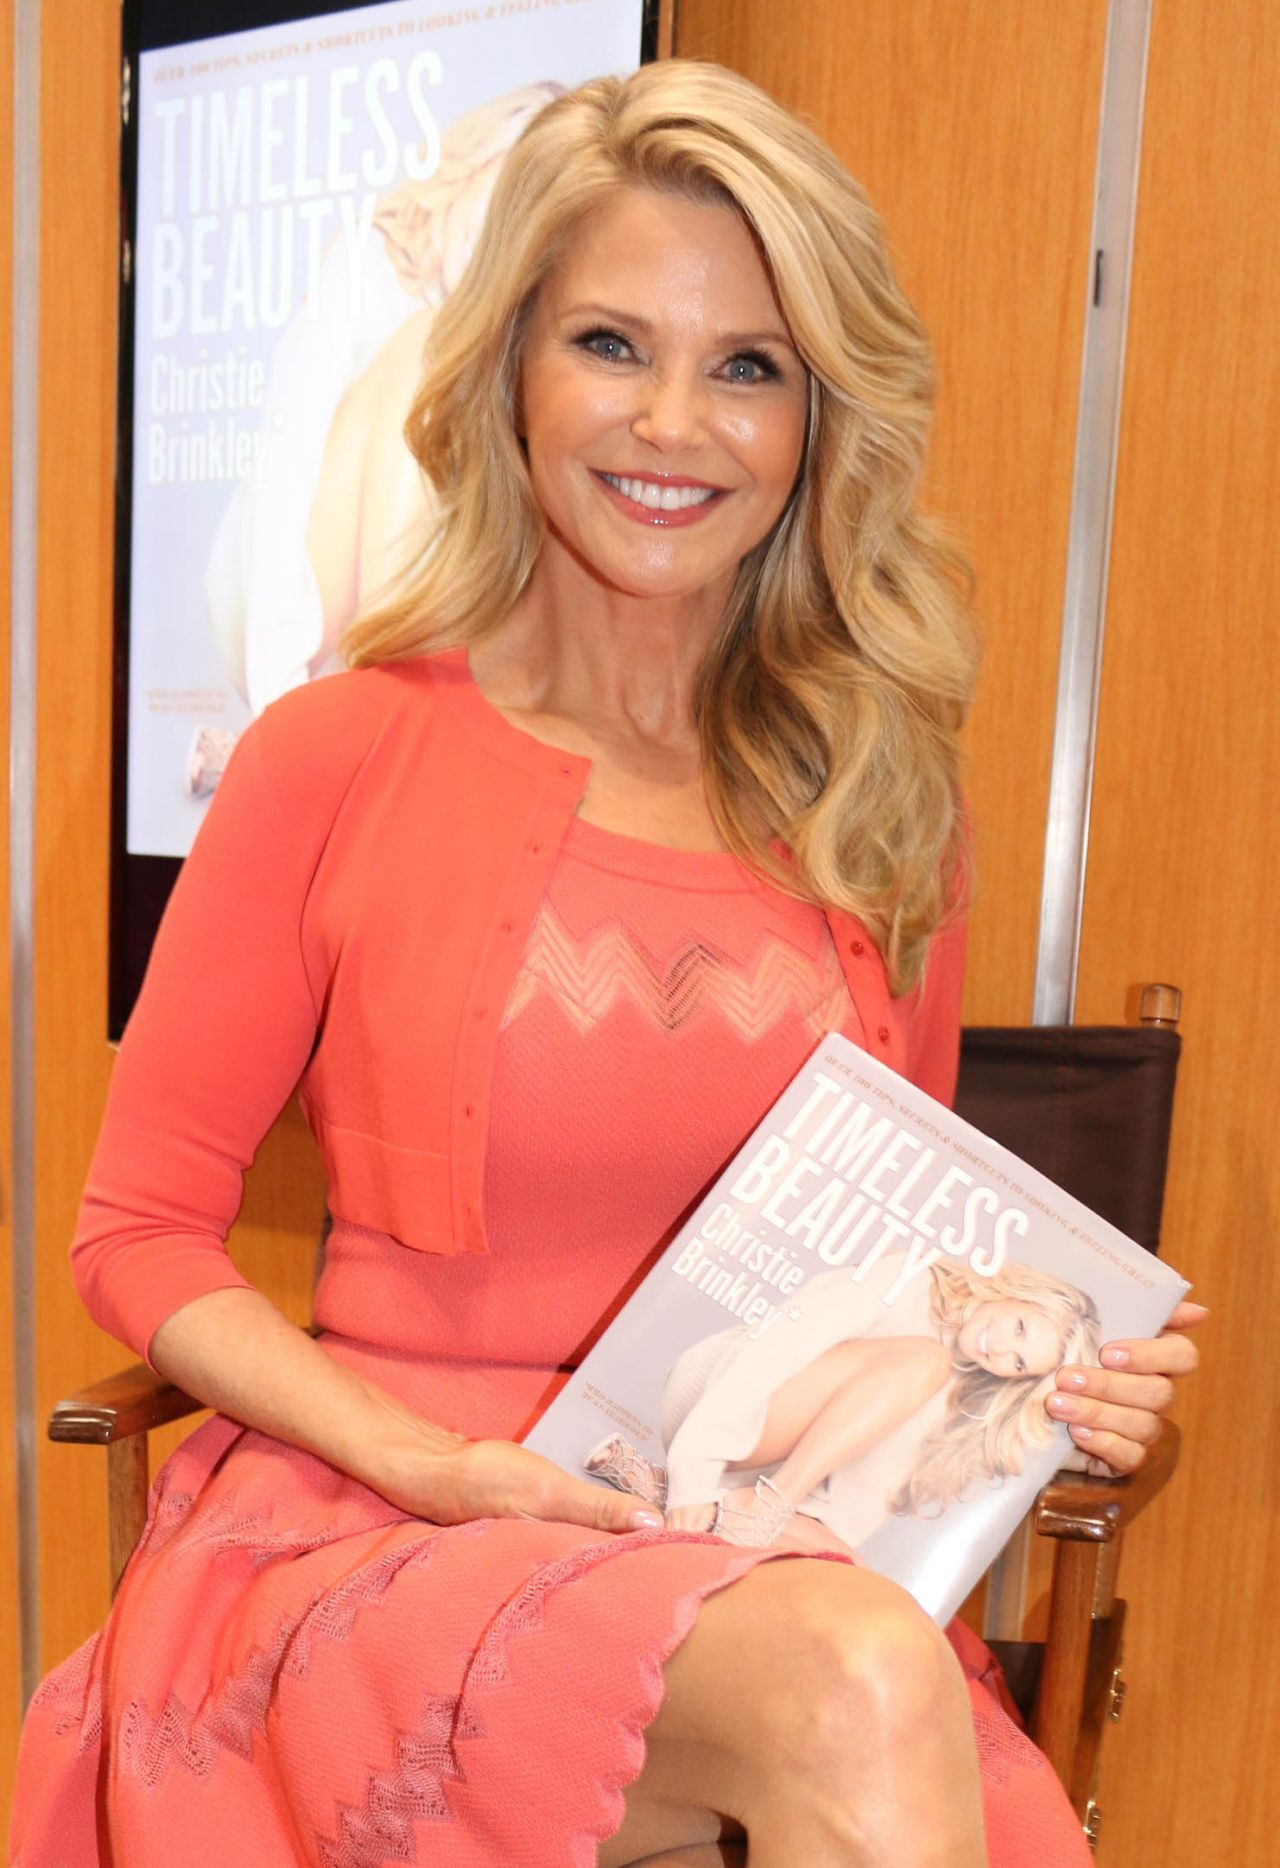 Christie Brinkley Bookexpo America In Nyc May 2015